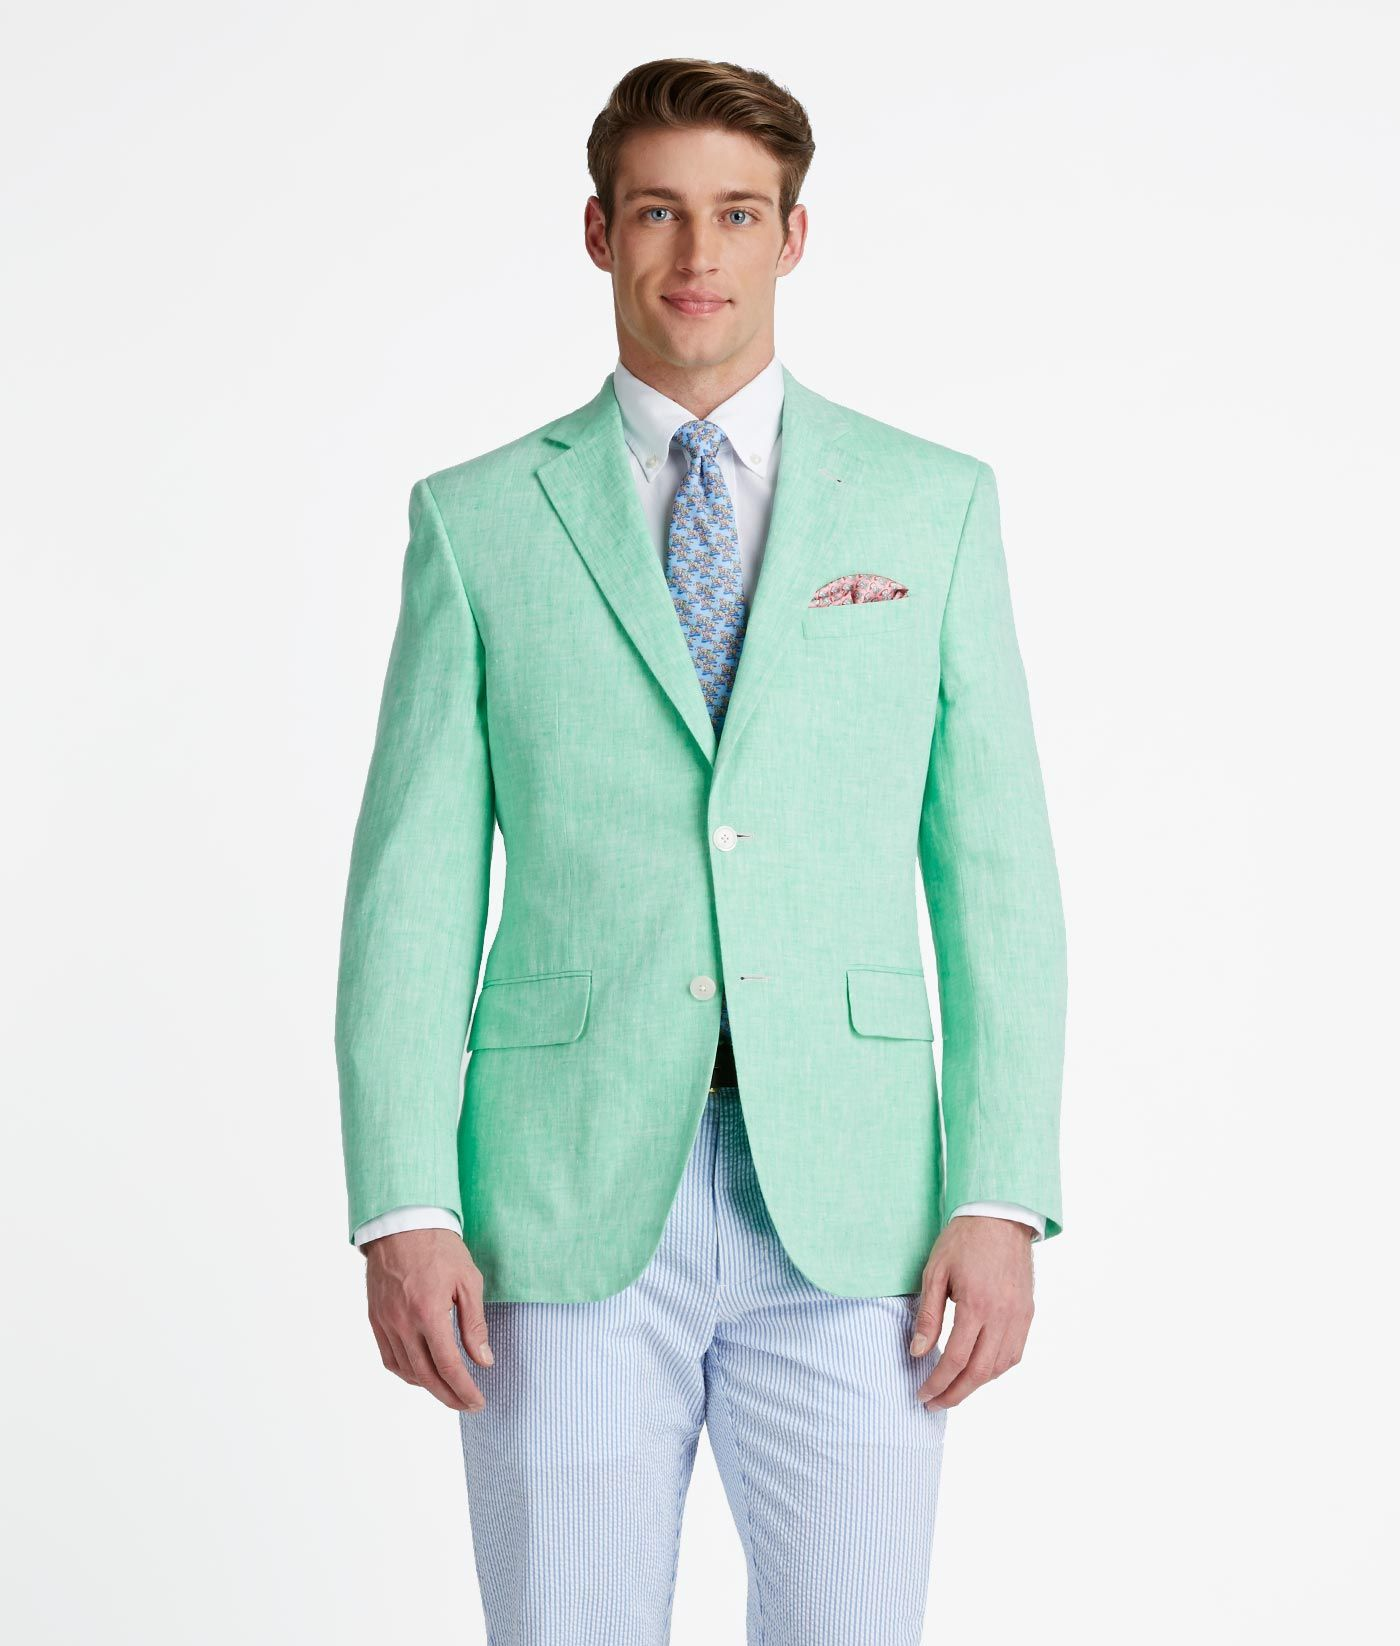 Men\'s Blazers | Shop Linen Sport Coats & Blazers - Vineyard Vines ...